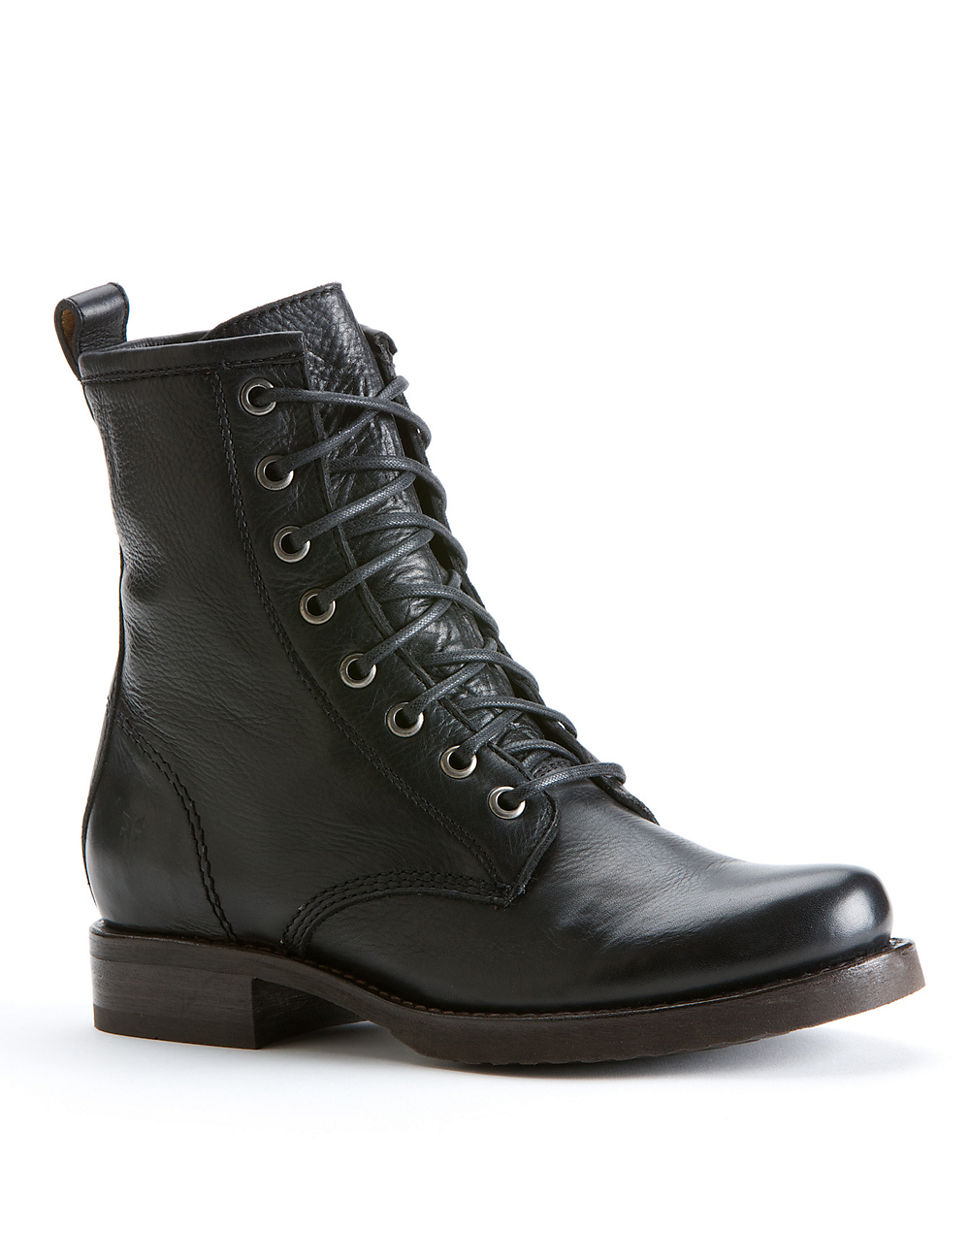 4be82e62b83a Gallery. Previously sold at  Lord   Taylor · Women s Combat Boots